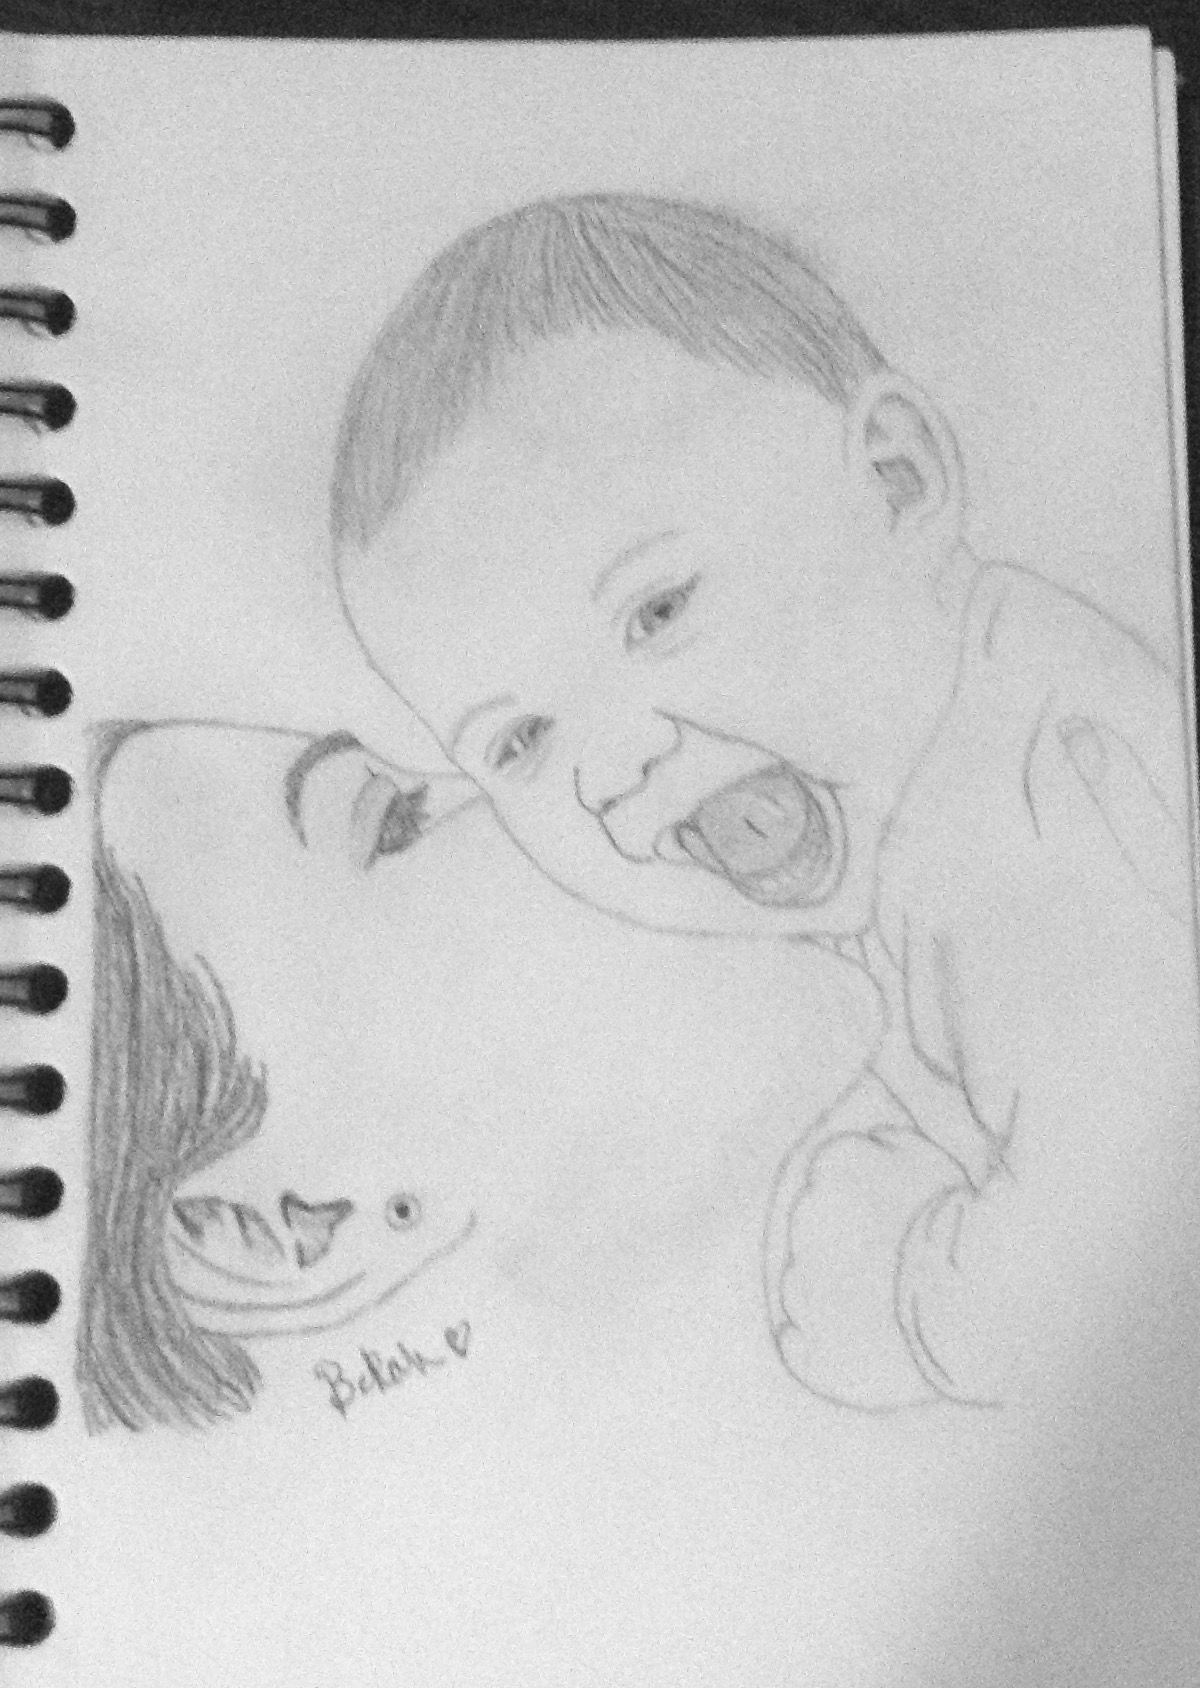 Pin By Sierra S On Art Meaningful Drawings Art Sketches Drawings